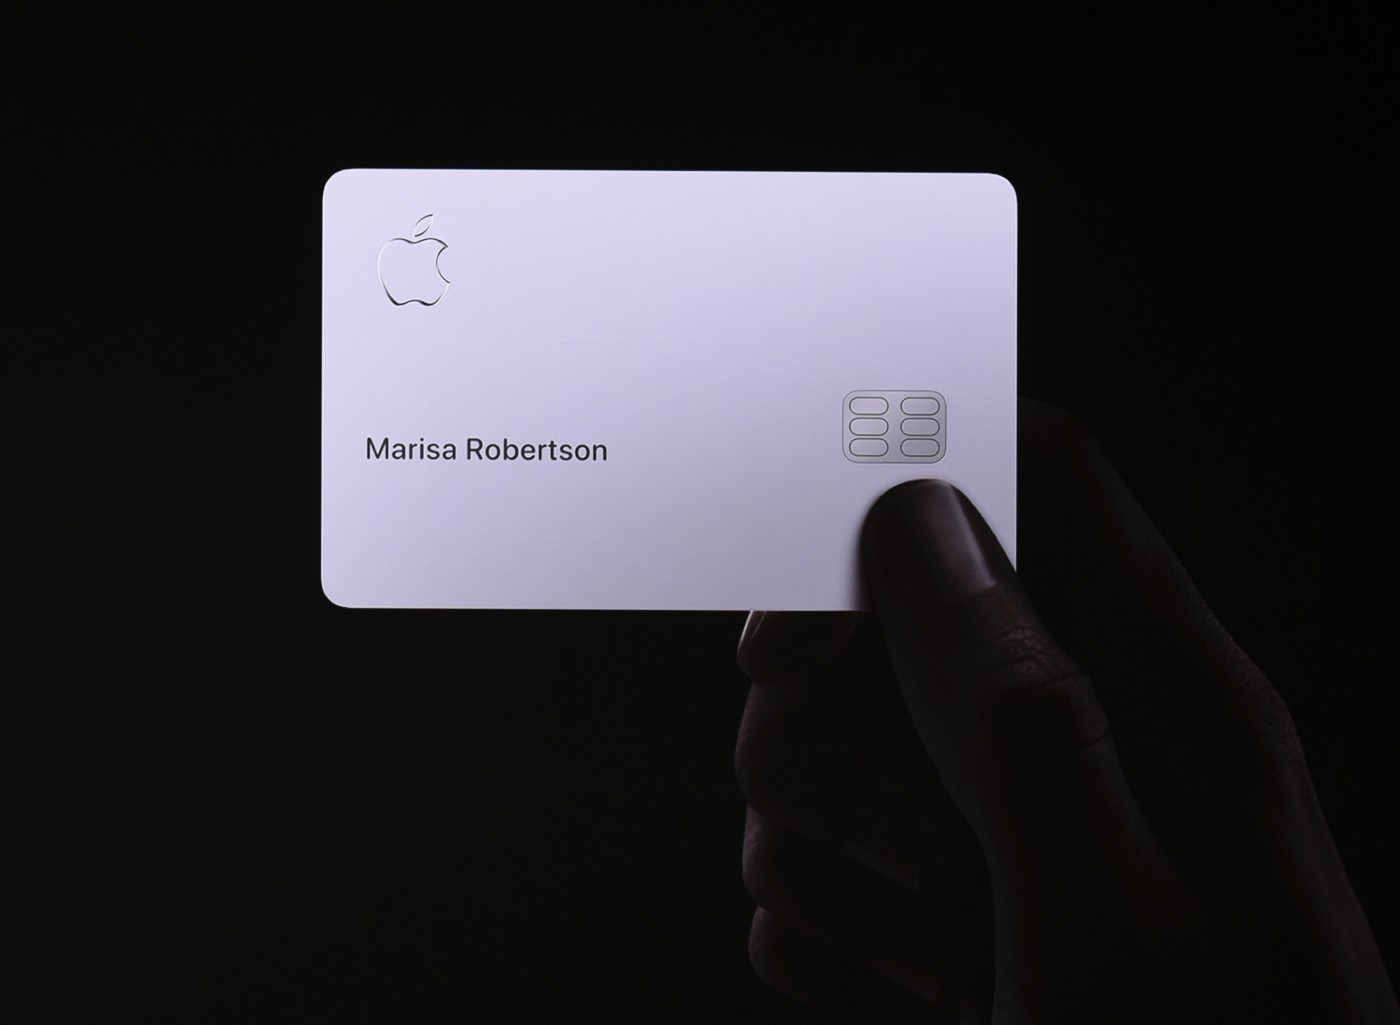 The Apple Card, presented at Apple's product launch event on March 25, 2019.